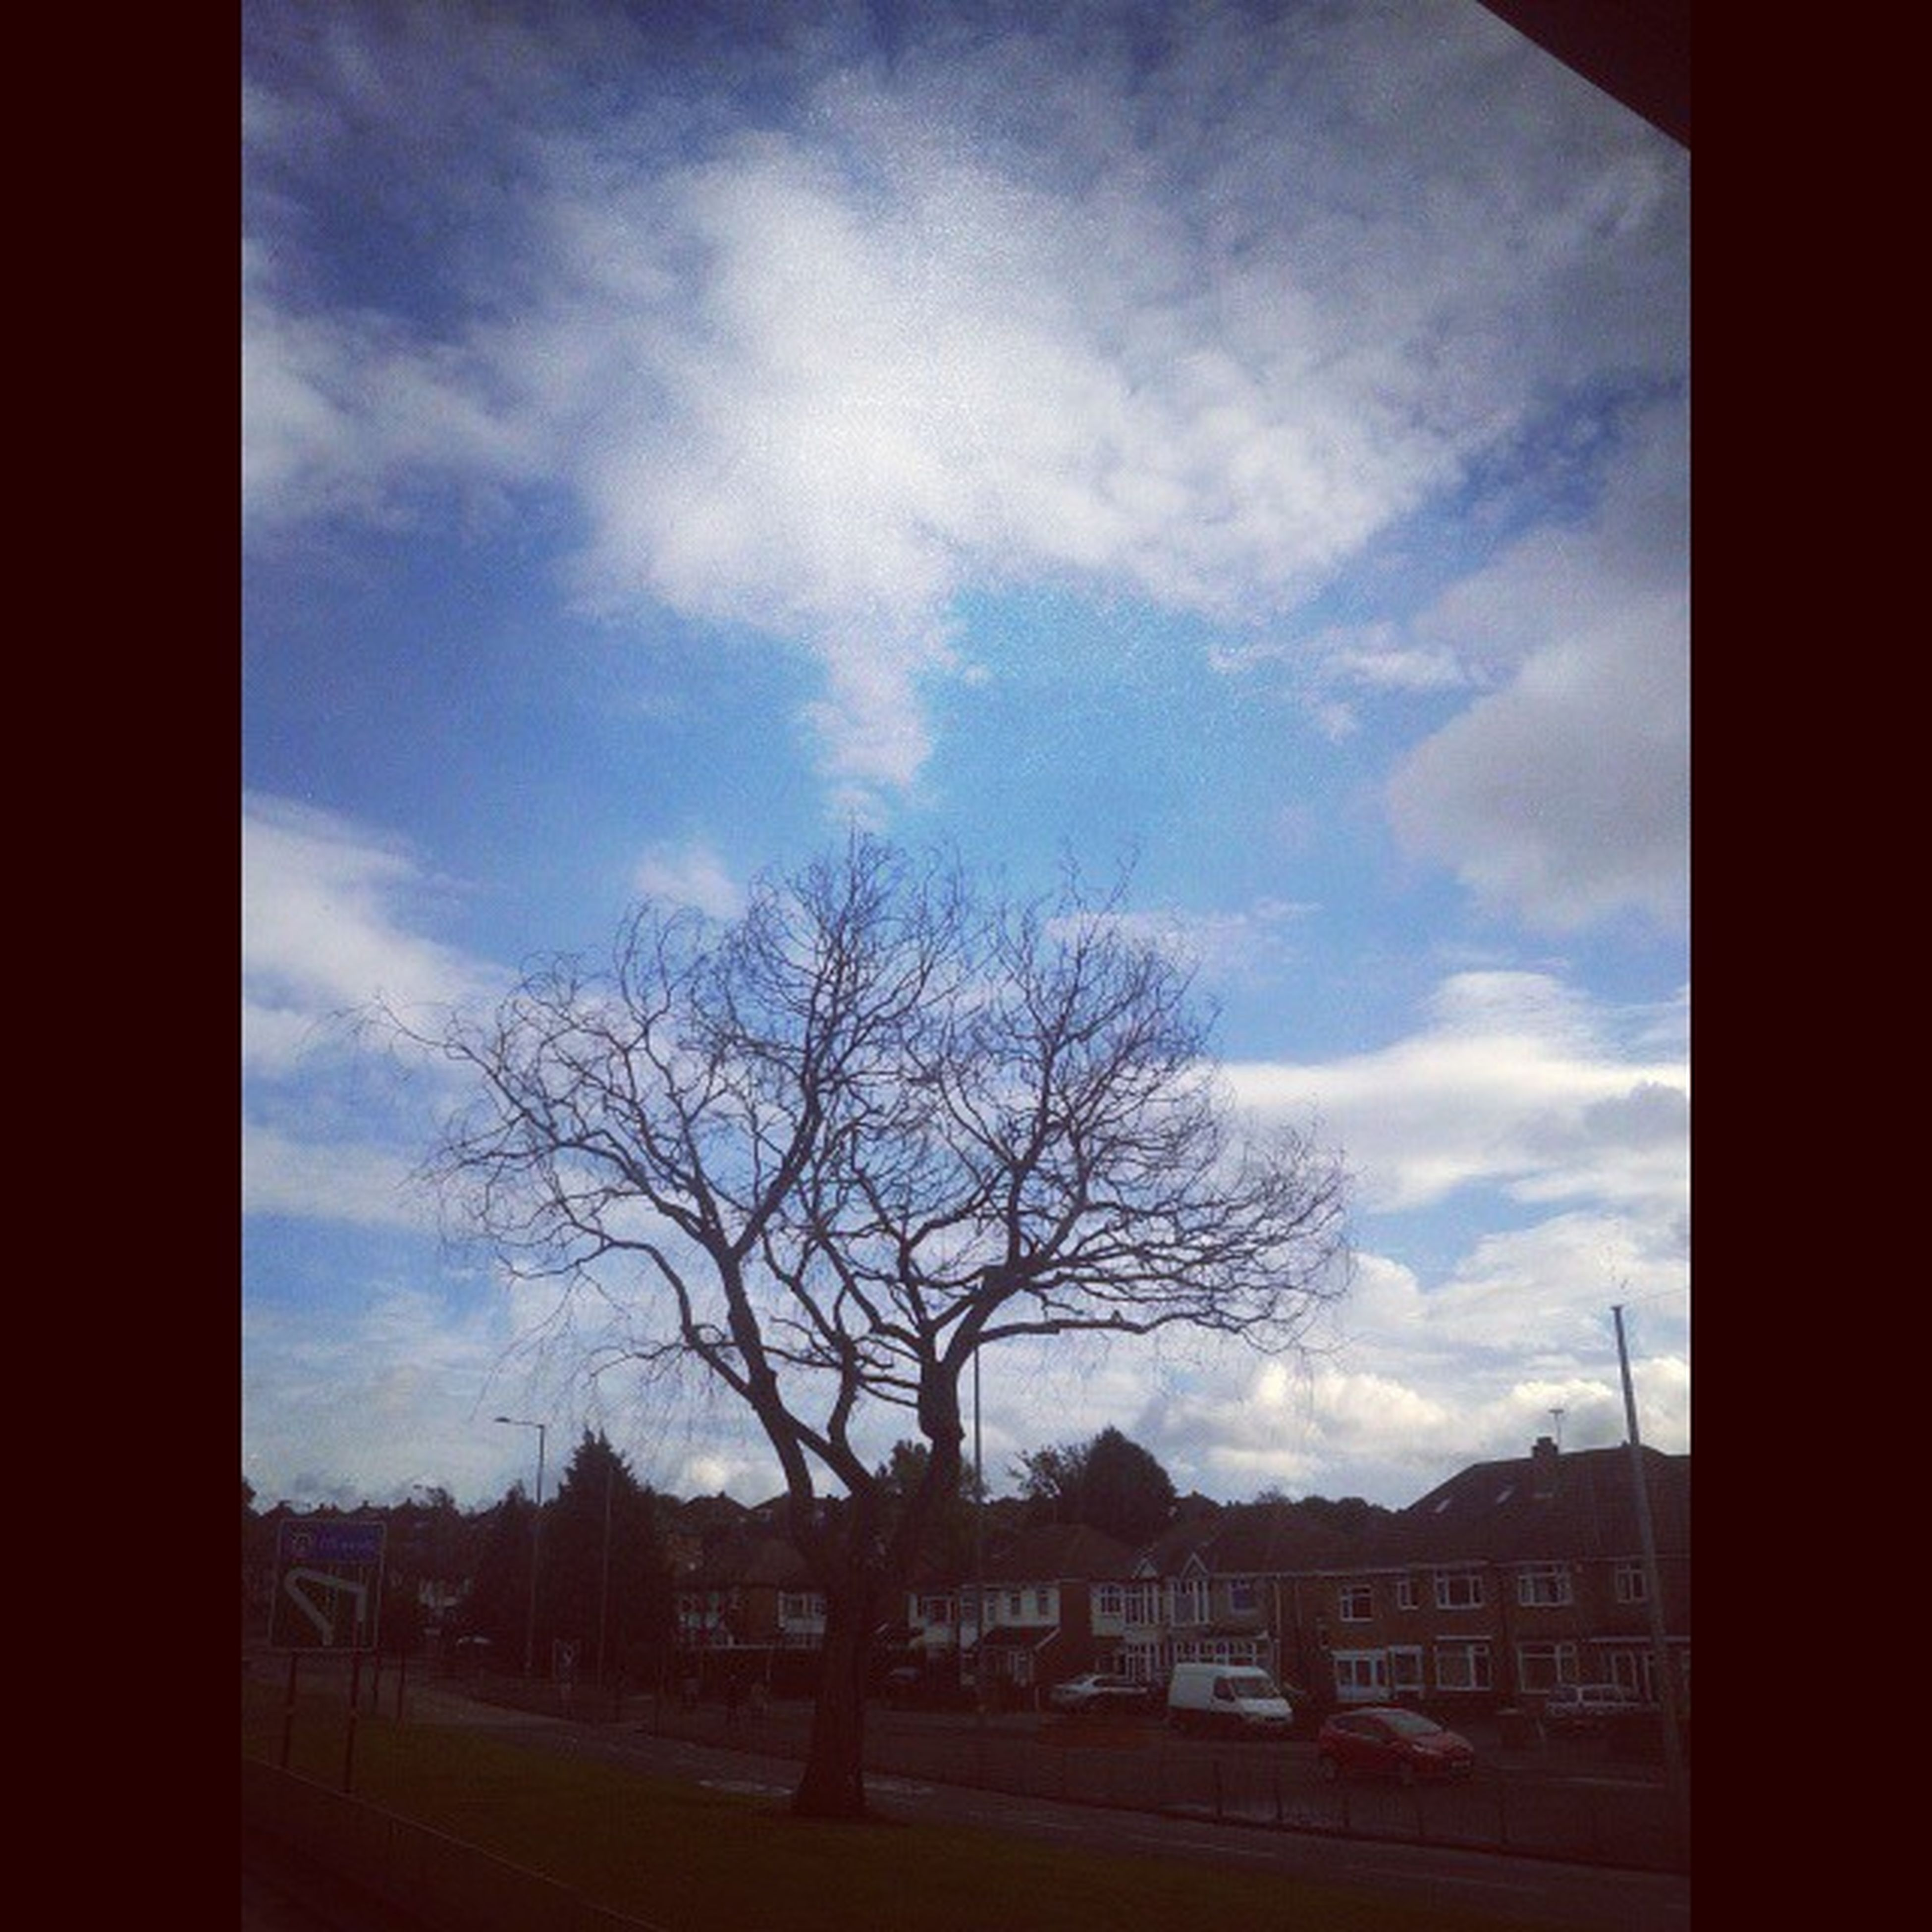 bare tree, sky, tree, cloud - sky, built structure, architecture, cloud, transfer print, building exterior, auto post production filter, silhouette, cloudy, transportation, road, nature, branch, car, day, house, landscape